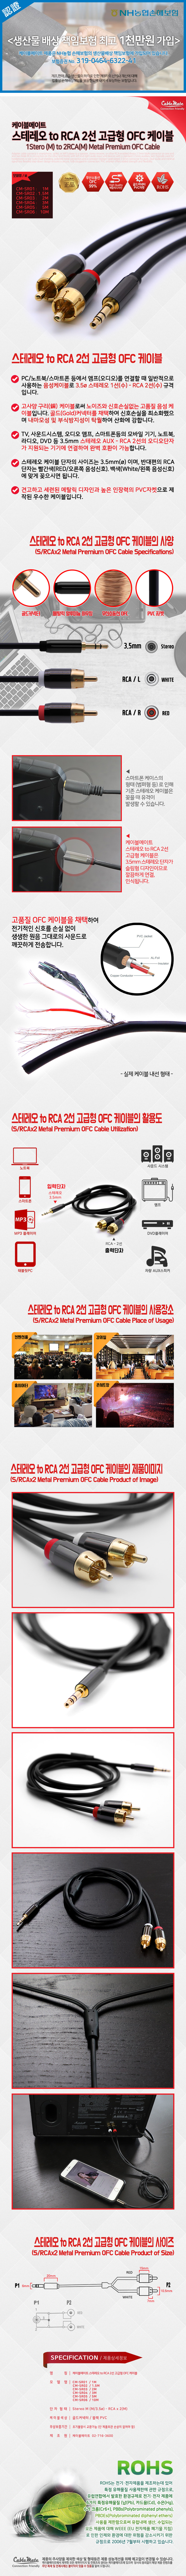 CABLEMATE  스테레오 to RCA 2선 고급형 케이블(3m, CM-SR04)